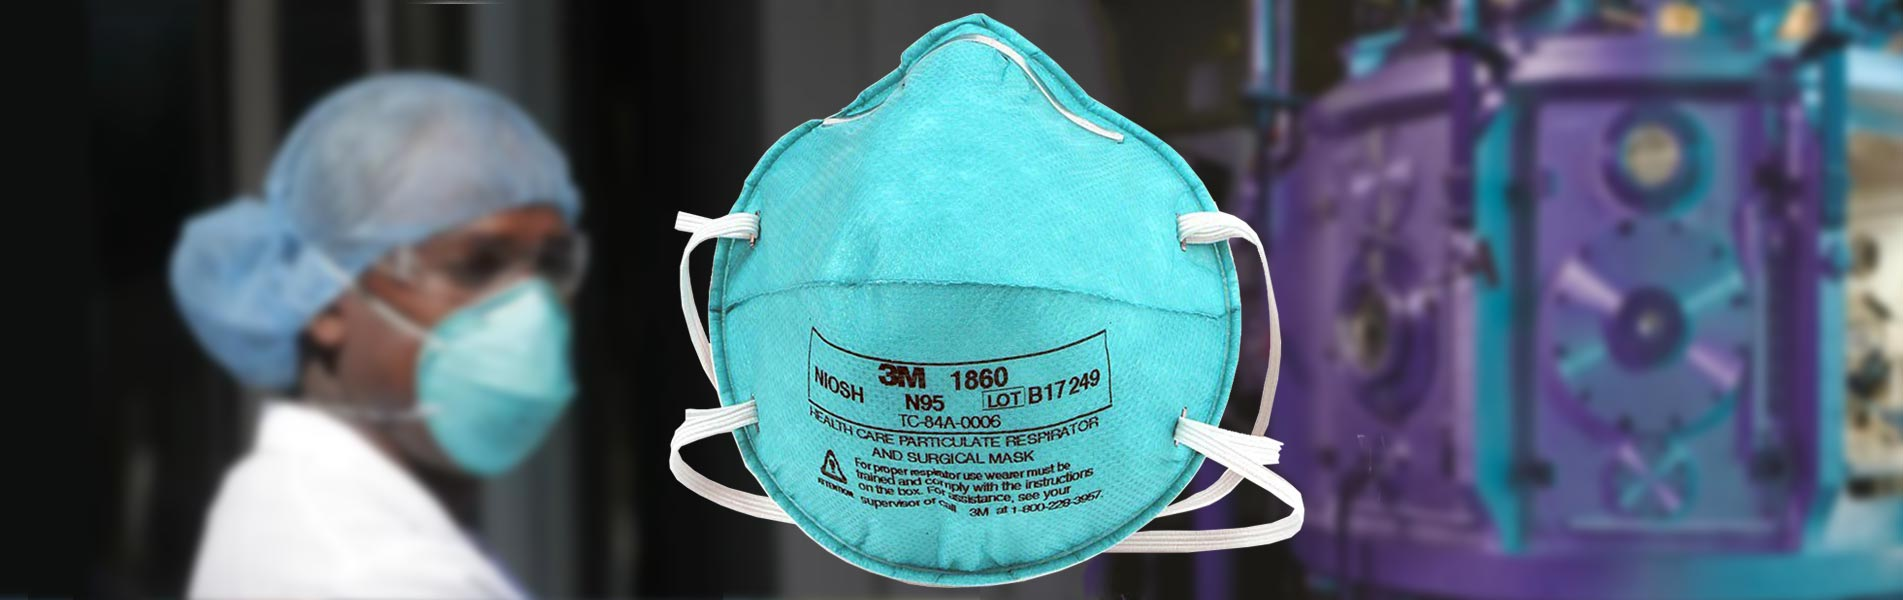 buy 3m n95 masks